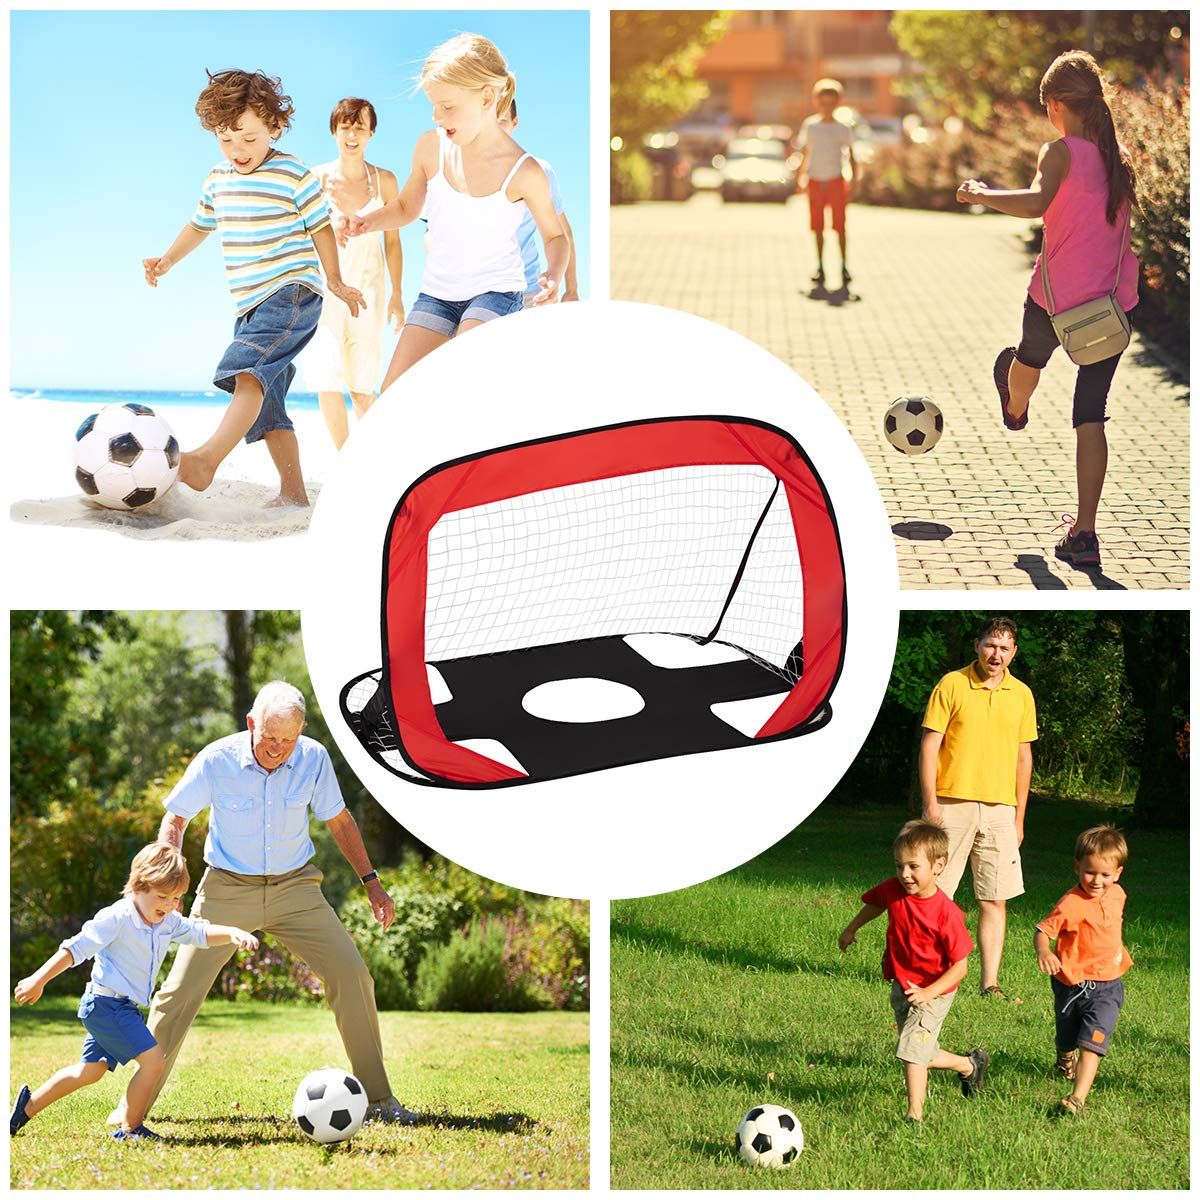 2 In 1 Pop Up Football Goal - Pro Size 110 x 80 x 80cm - Quick Set Up Goal with Target Shot Net Football Training Net, Soccer Training Net with Portable Carry Bag for Kids Children Indoor Outdoor Play COSTWAY